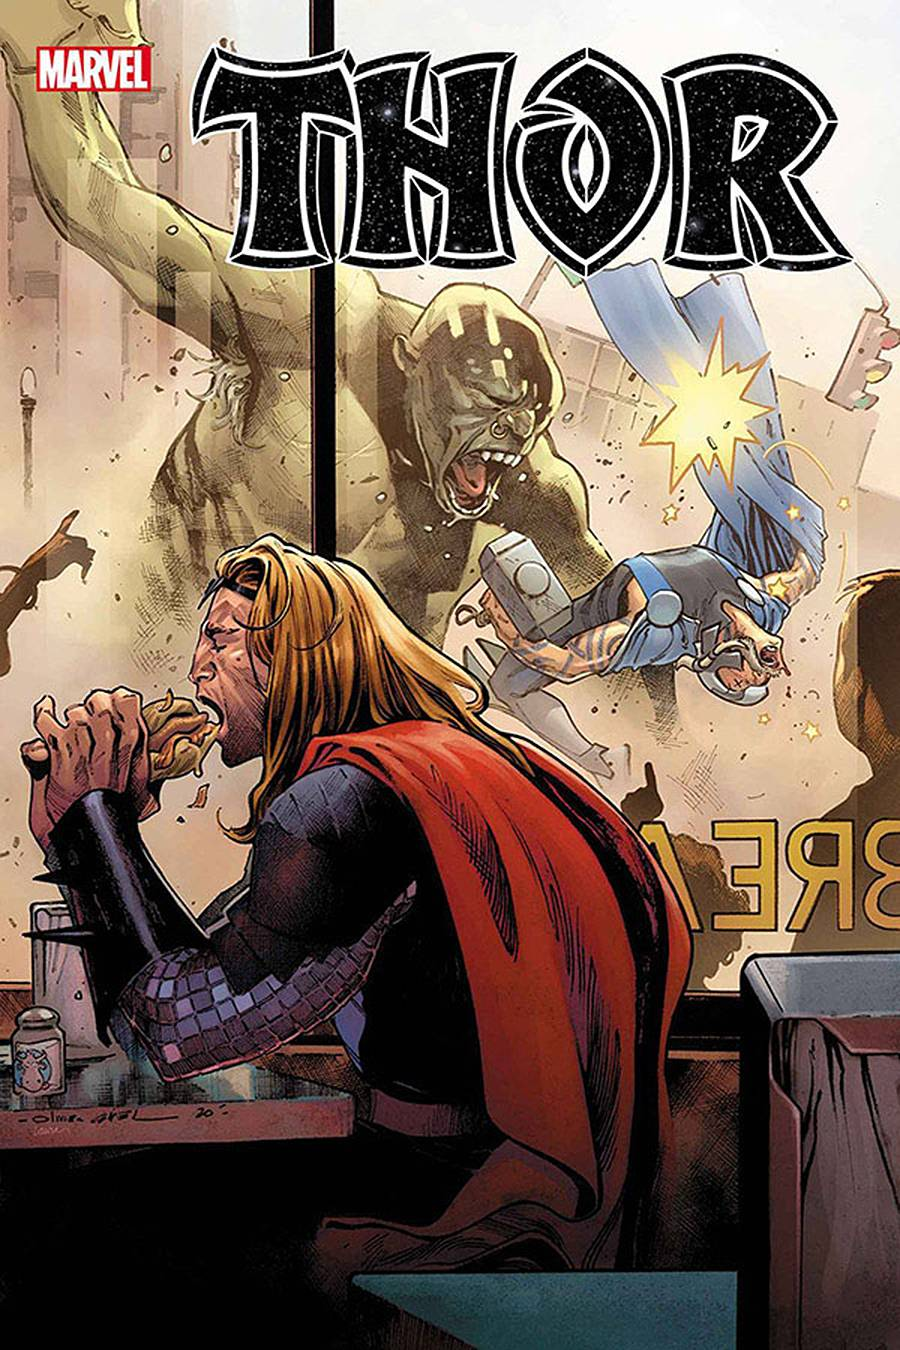 THOR #8 CATES SGN